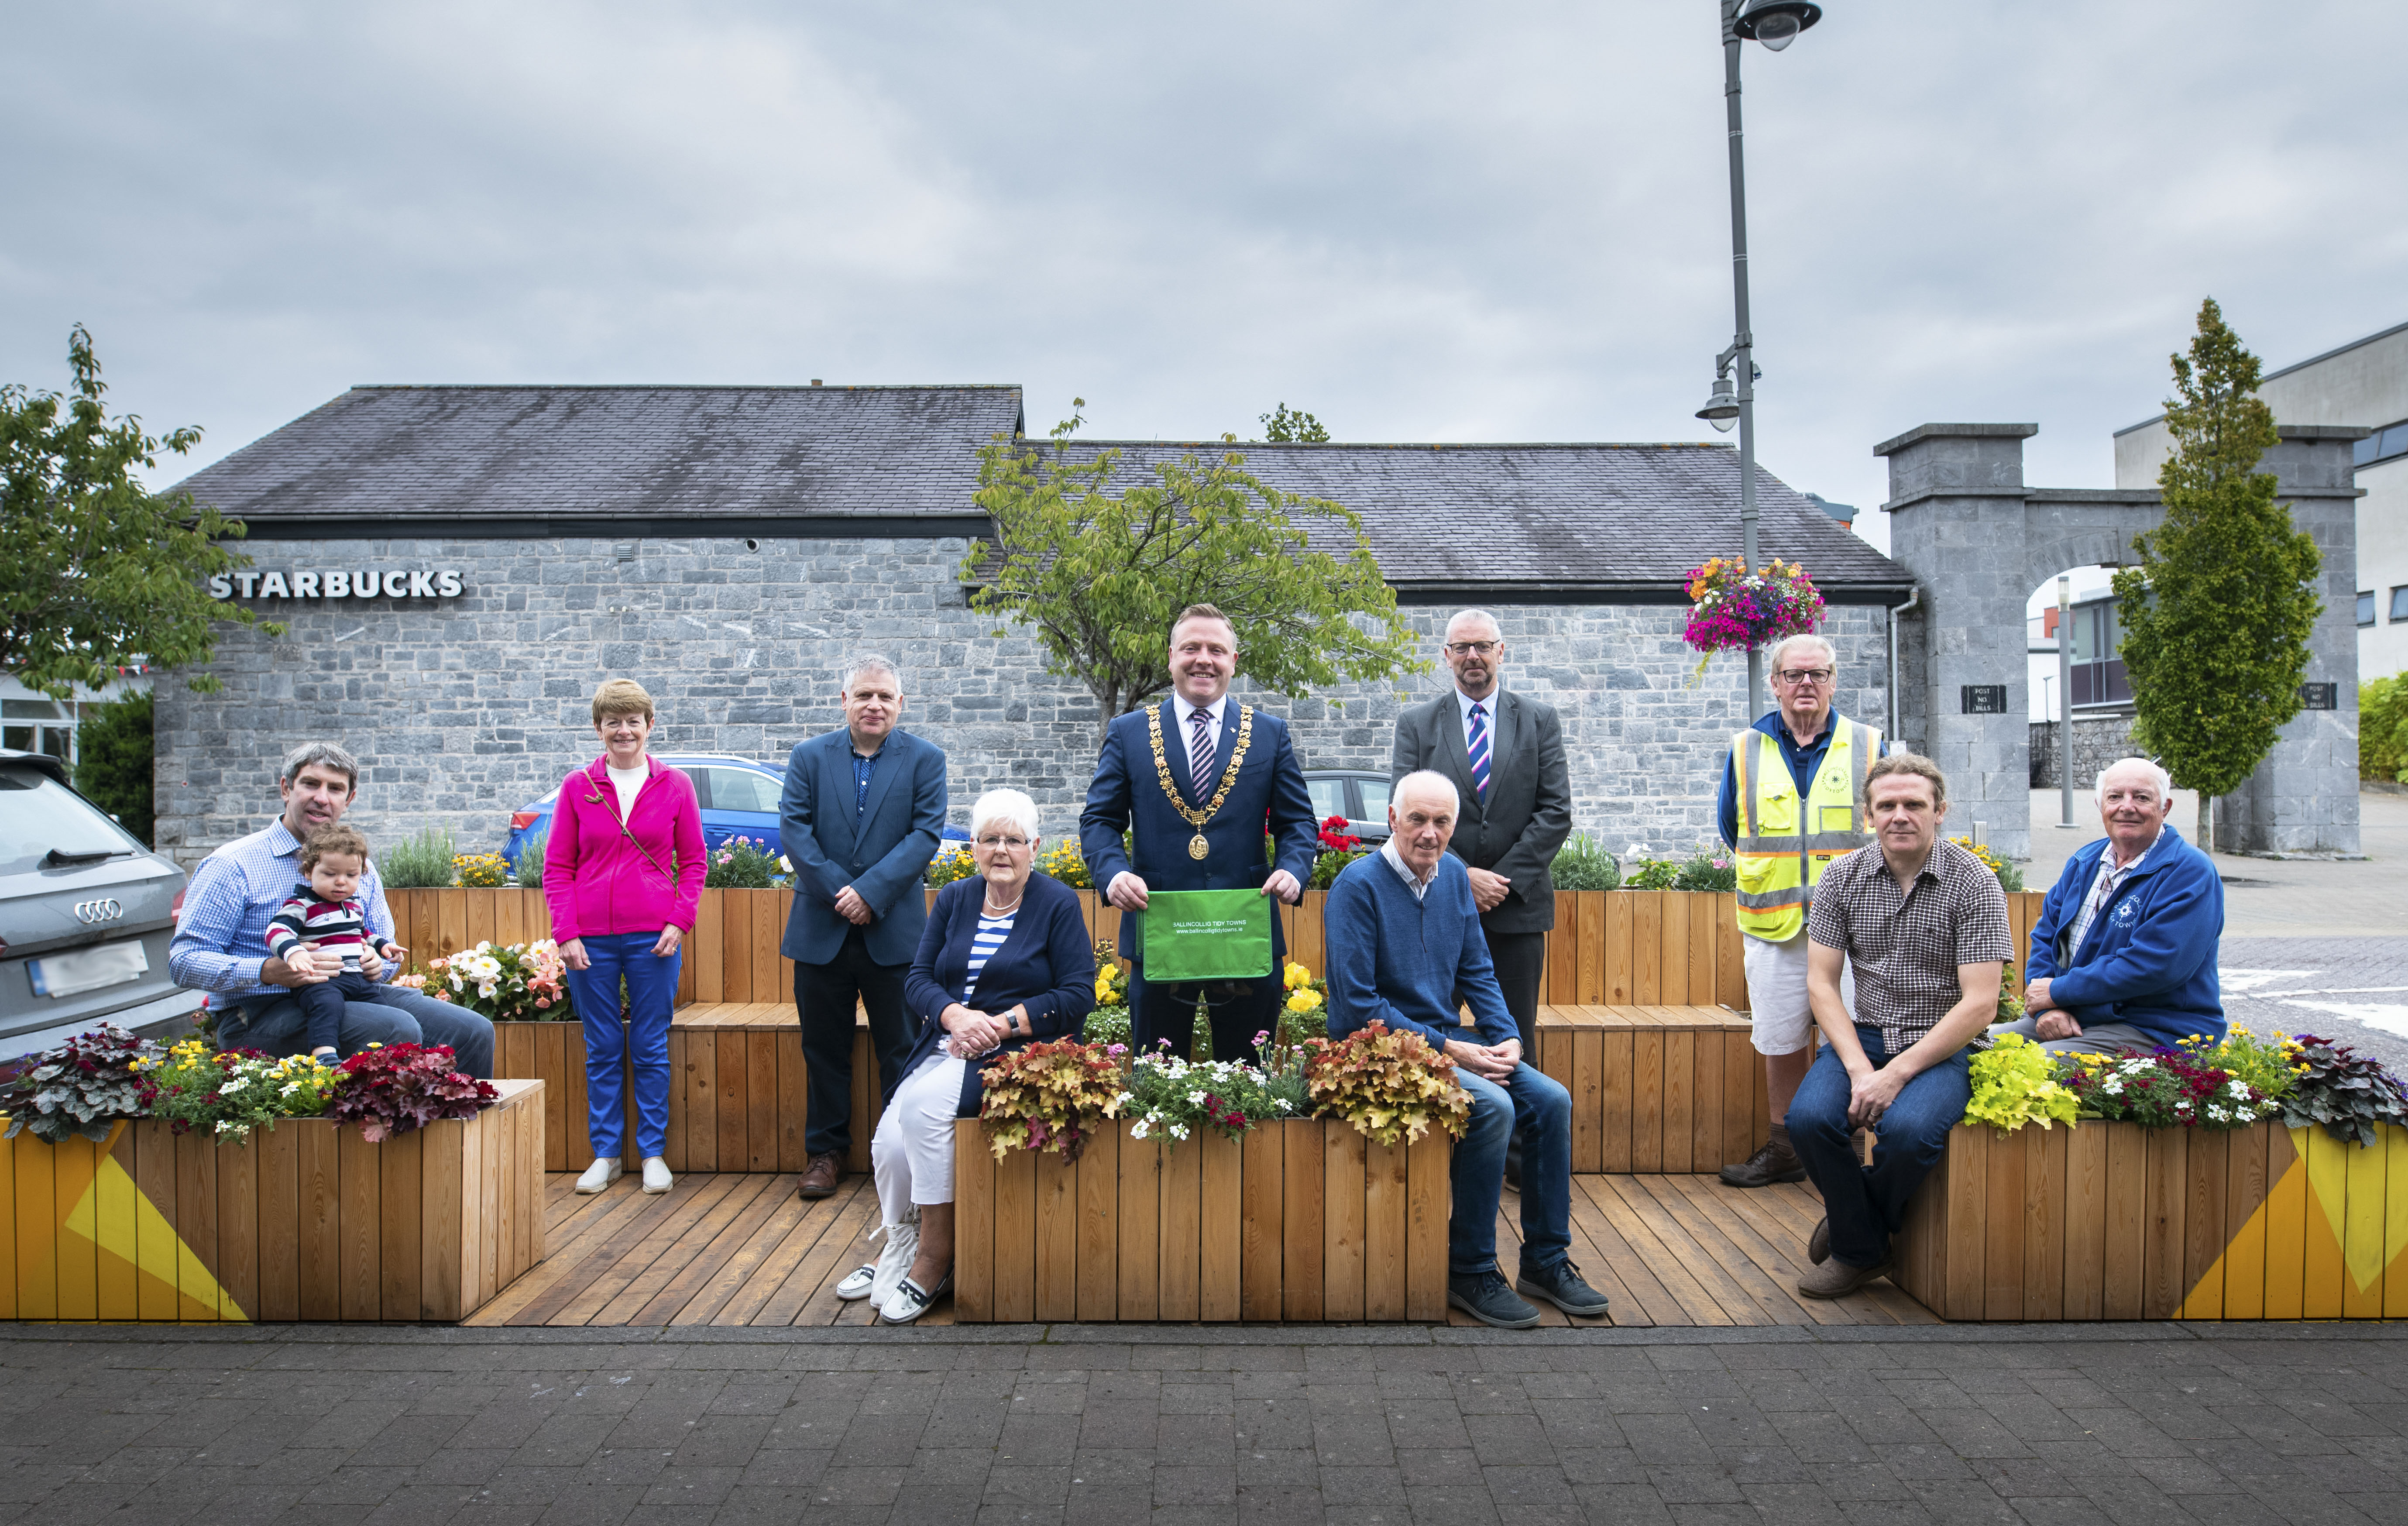 Lord Mayor of Cork Cllr. Colm Kelleher at the Launch of one of 8